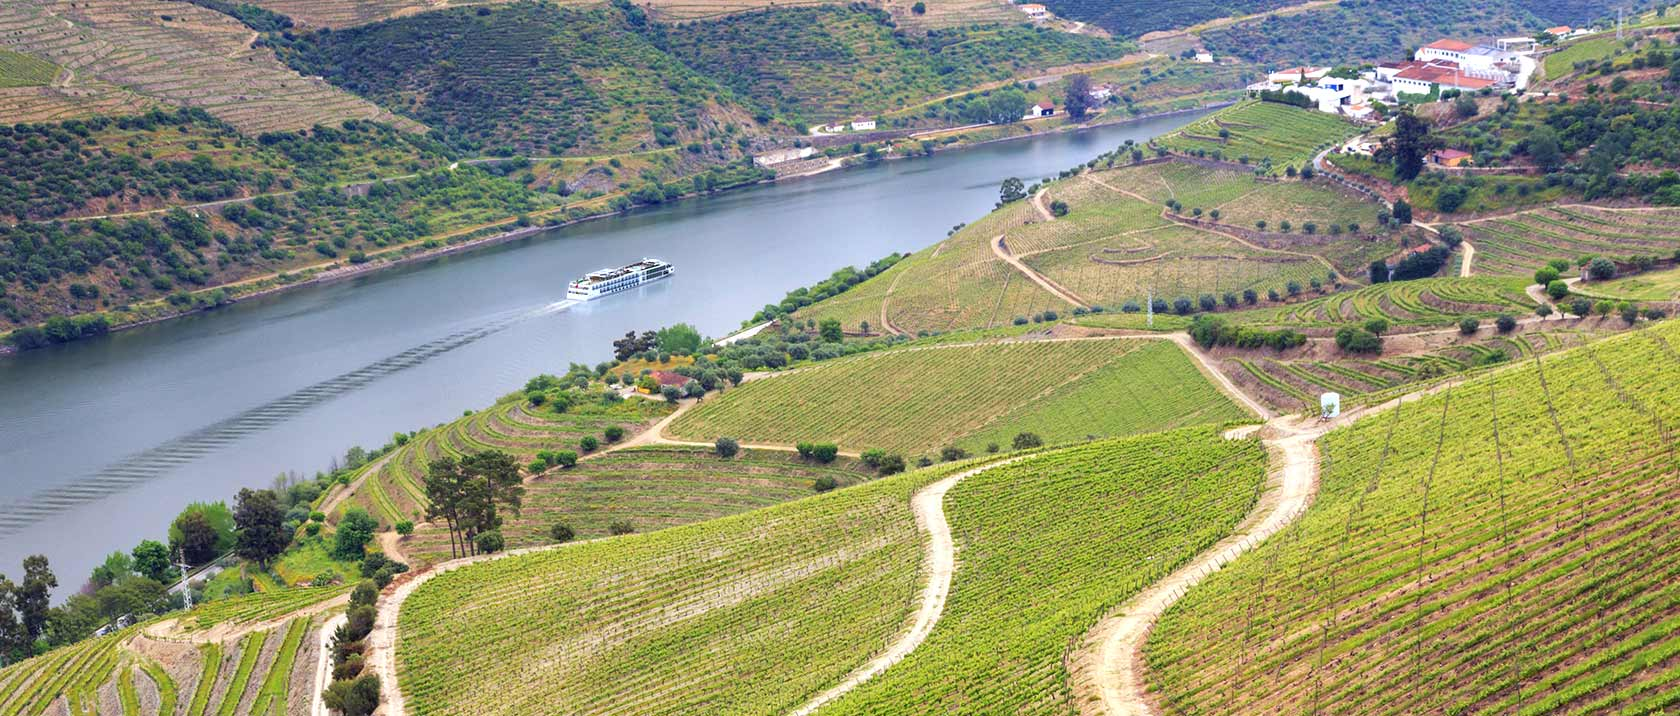 A Viking River Ship sailing down the Duoro as seen from a mountainside of green vineyards.